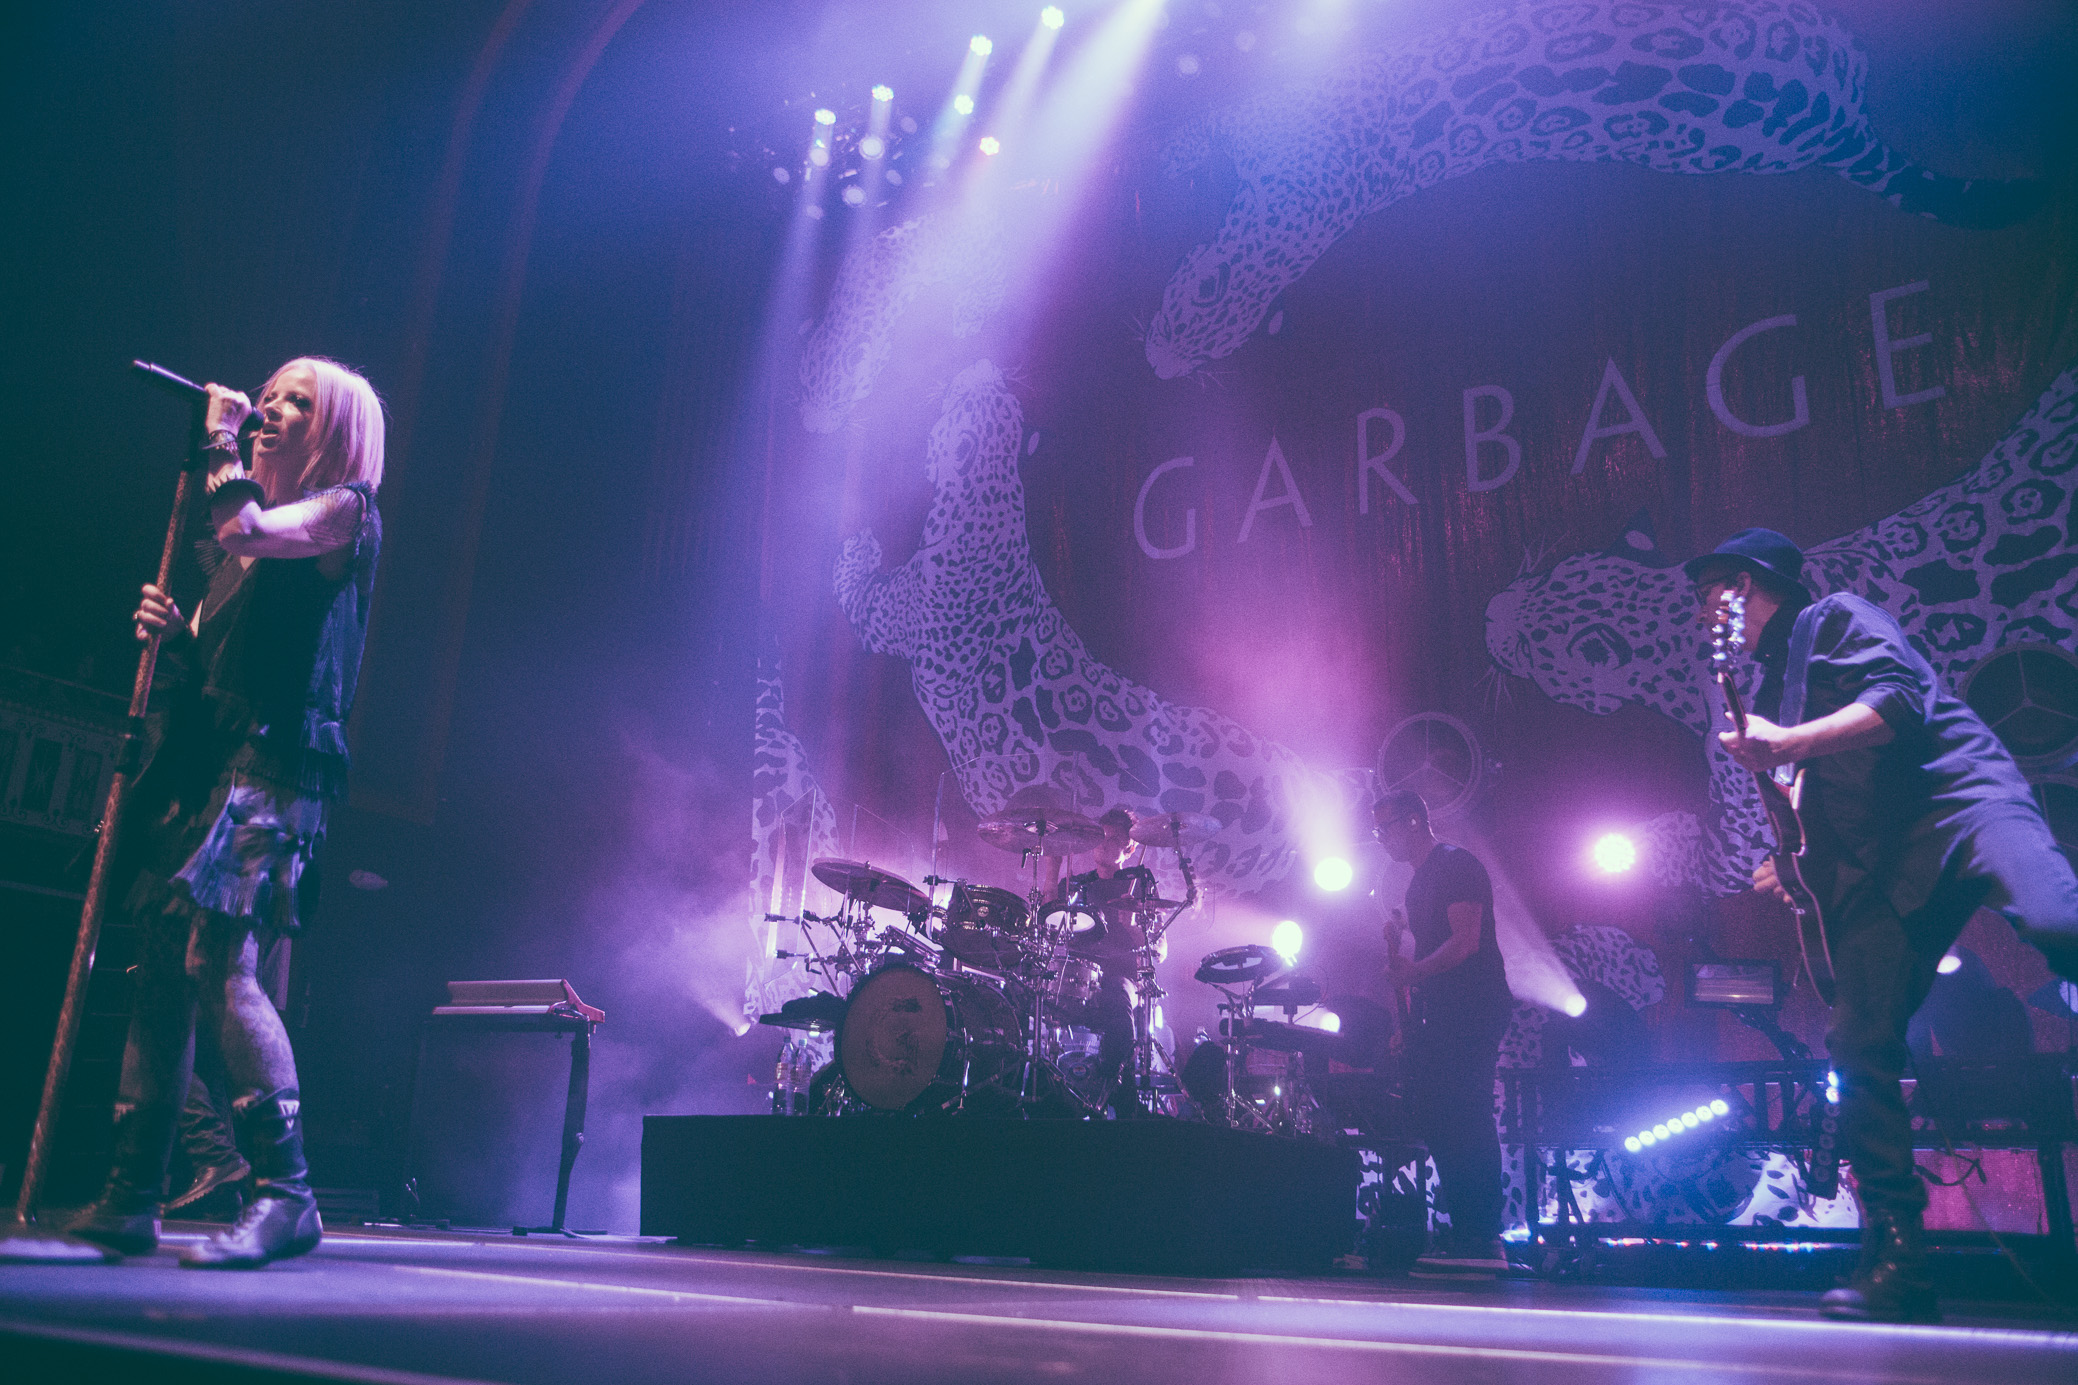 Garbage performs at The Tabernacle in Atlanta, Georgia on July 22nd, 2016.   (Photo by David A. Smith/DSmithScenes)